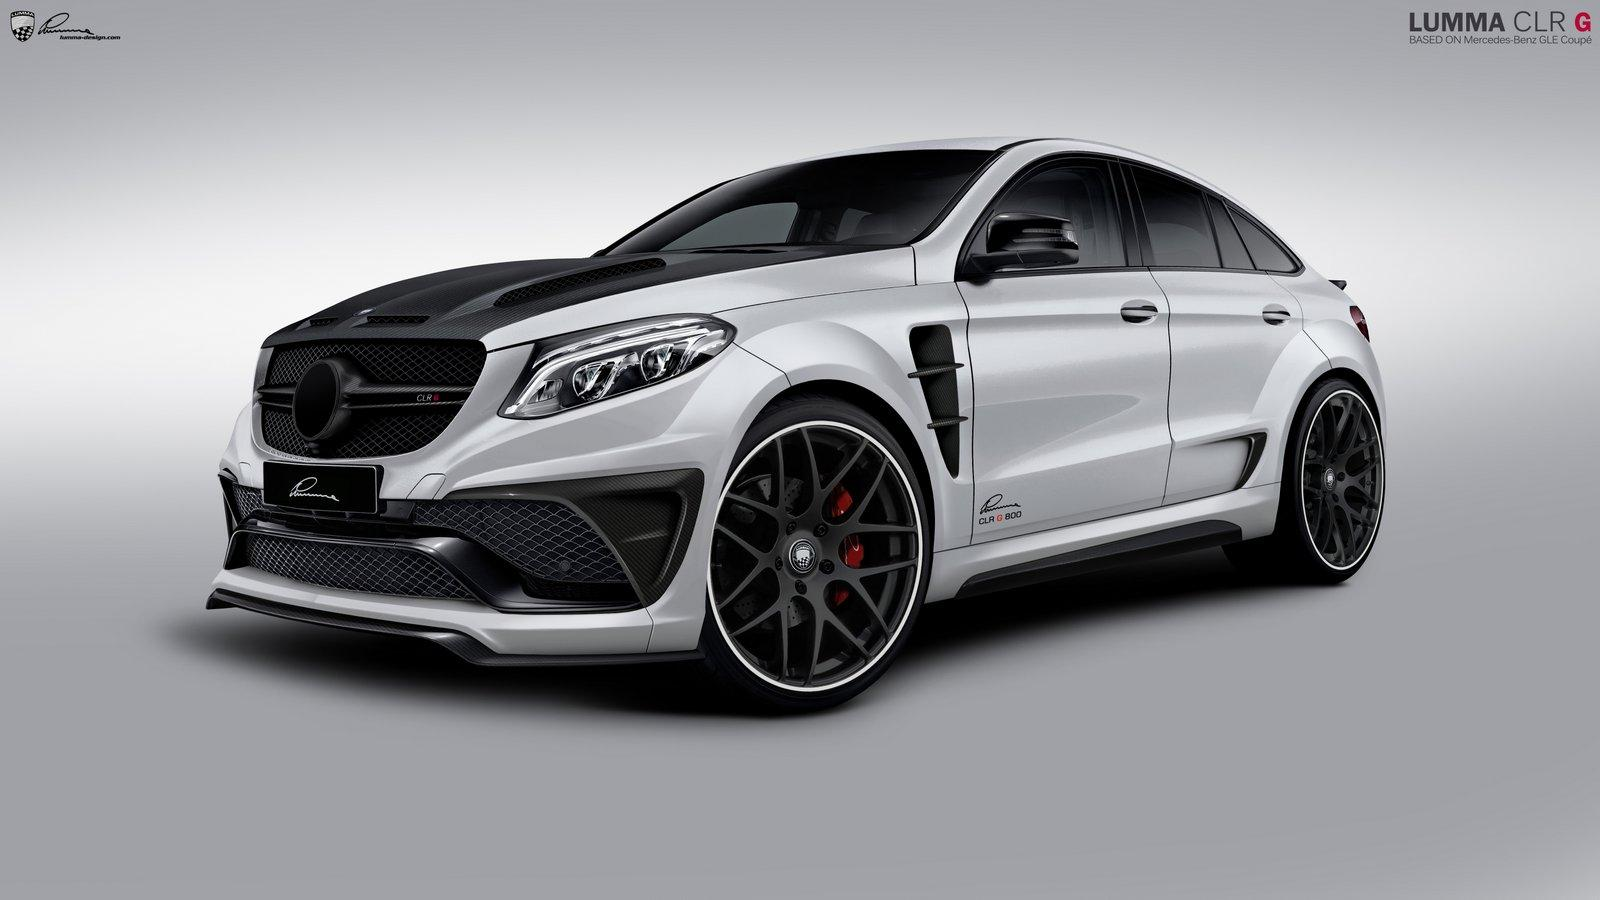 mercedes benz gle 63 amg by lumma benztuning. Black Bedroom Furniture Sets. Home Design Ideas